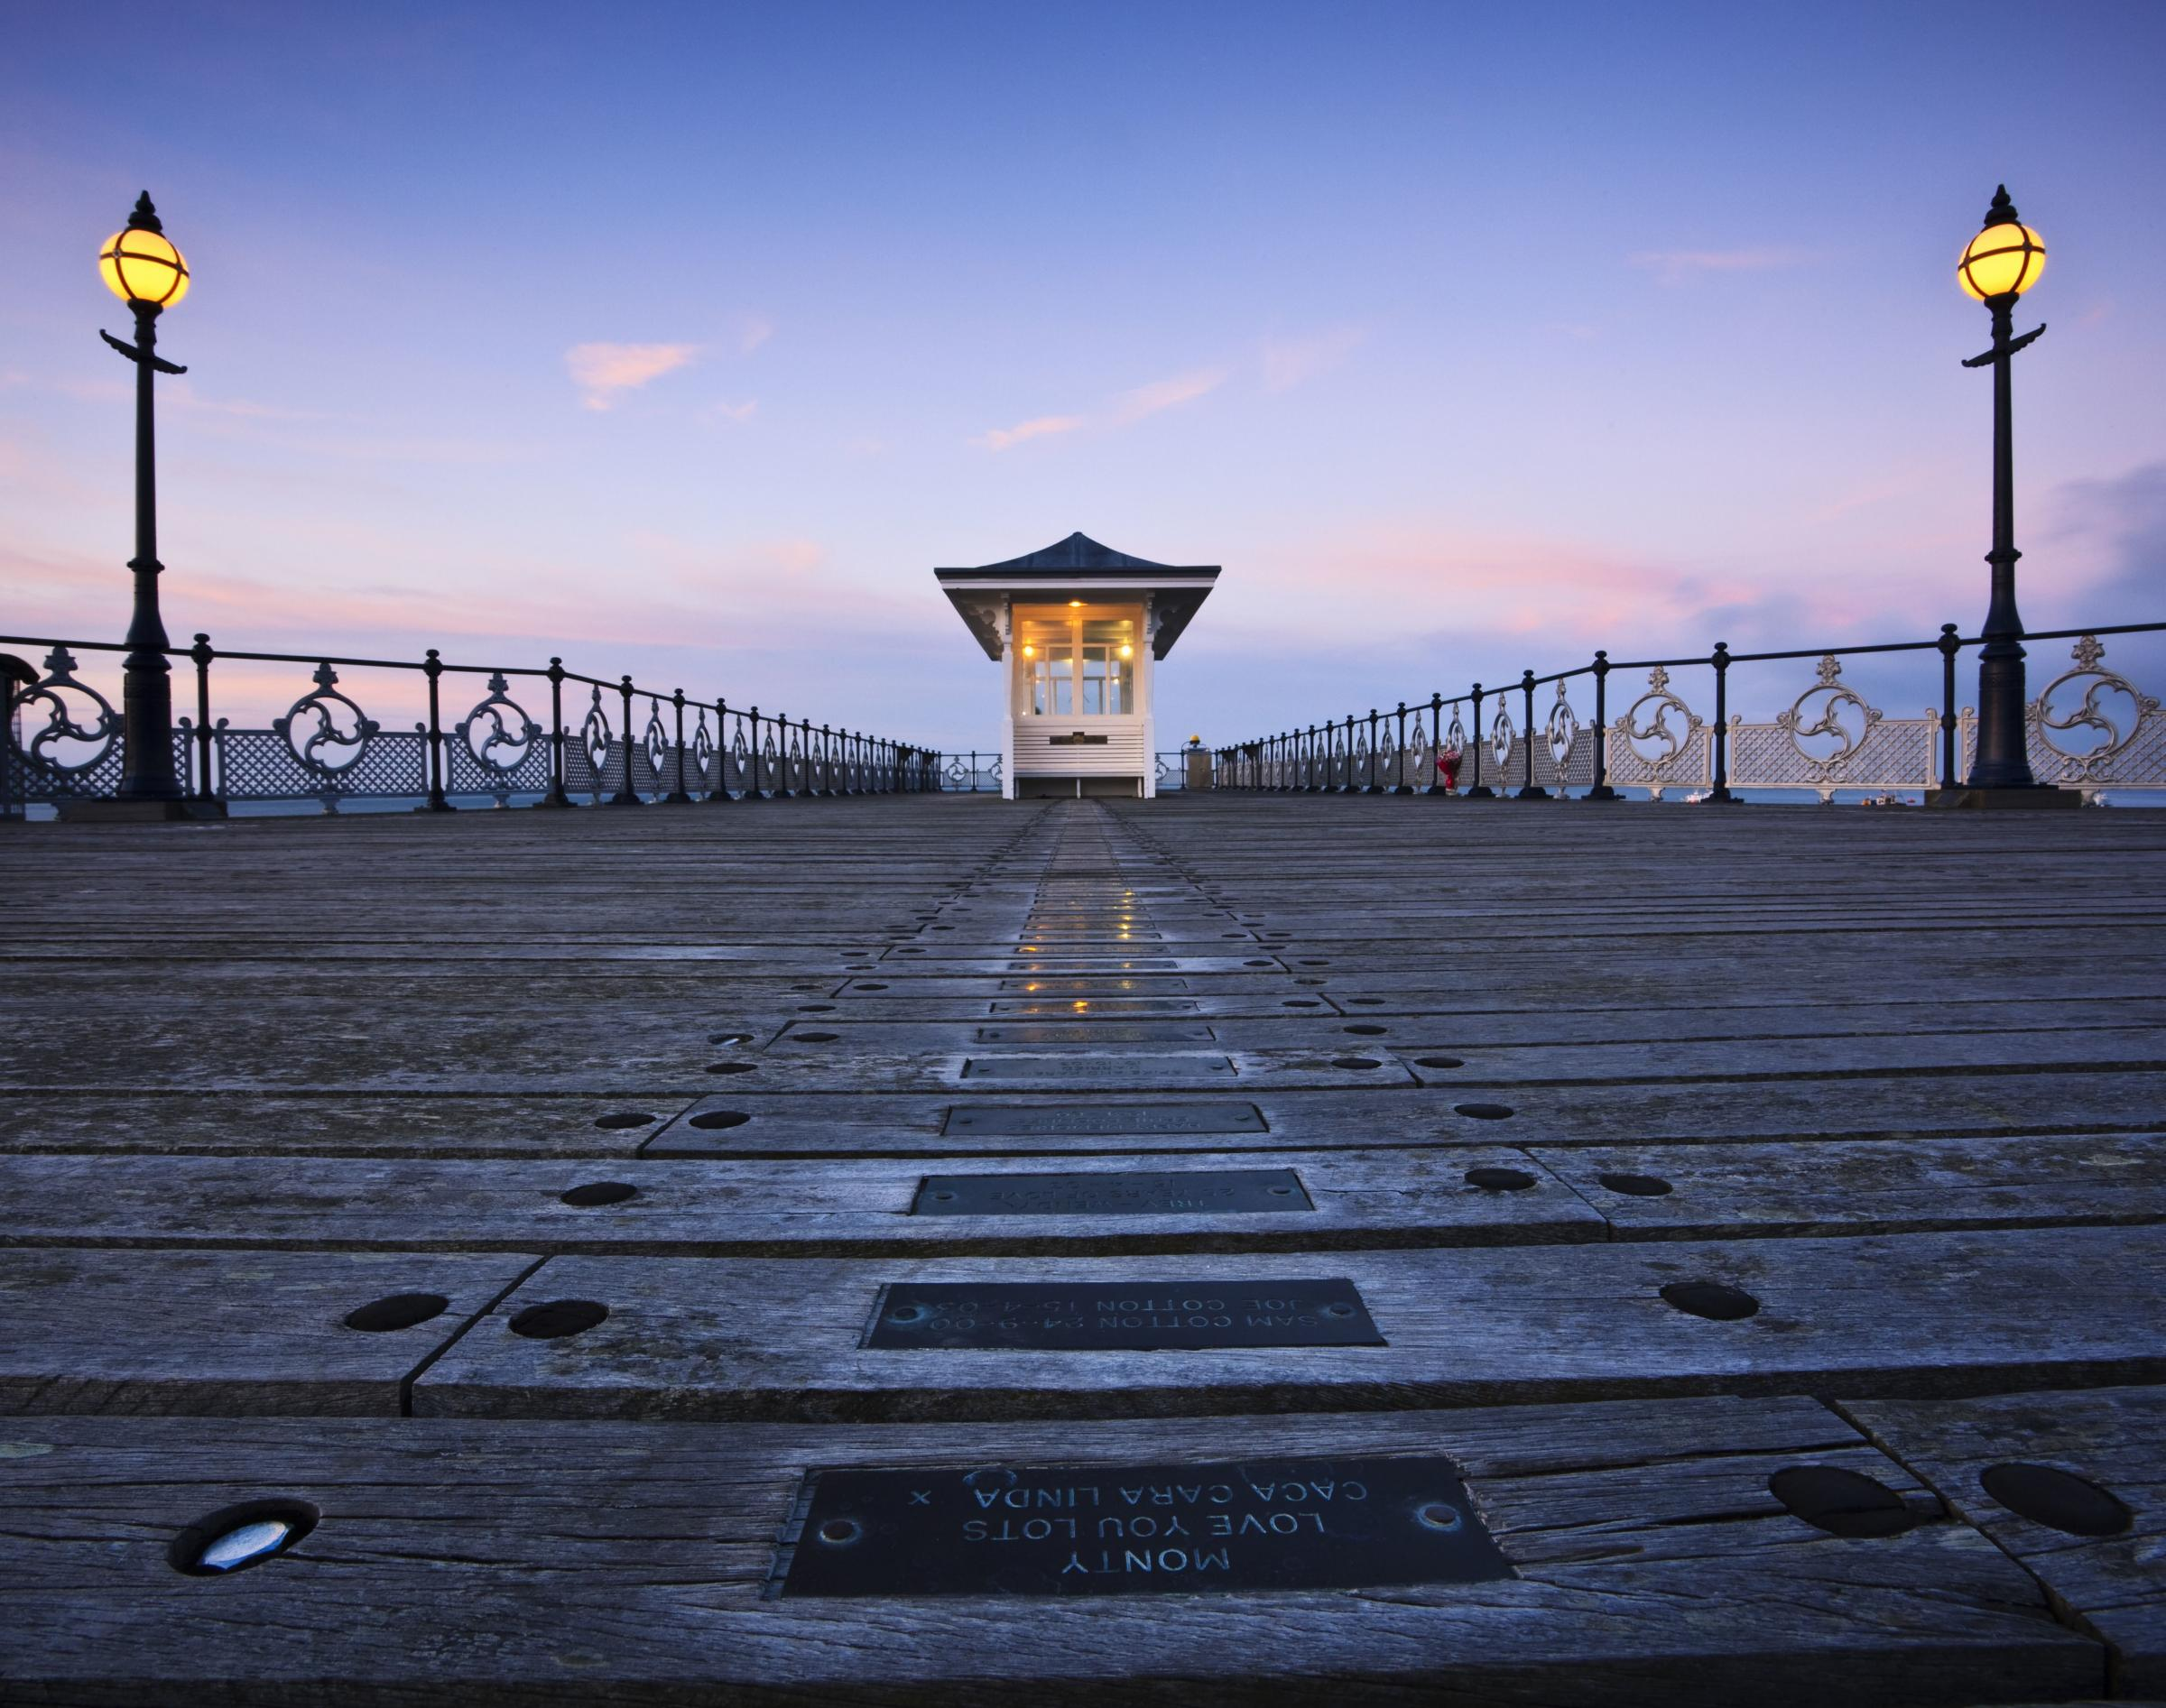 Swanage Pier to be lit up in colourful lighting display for first time